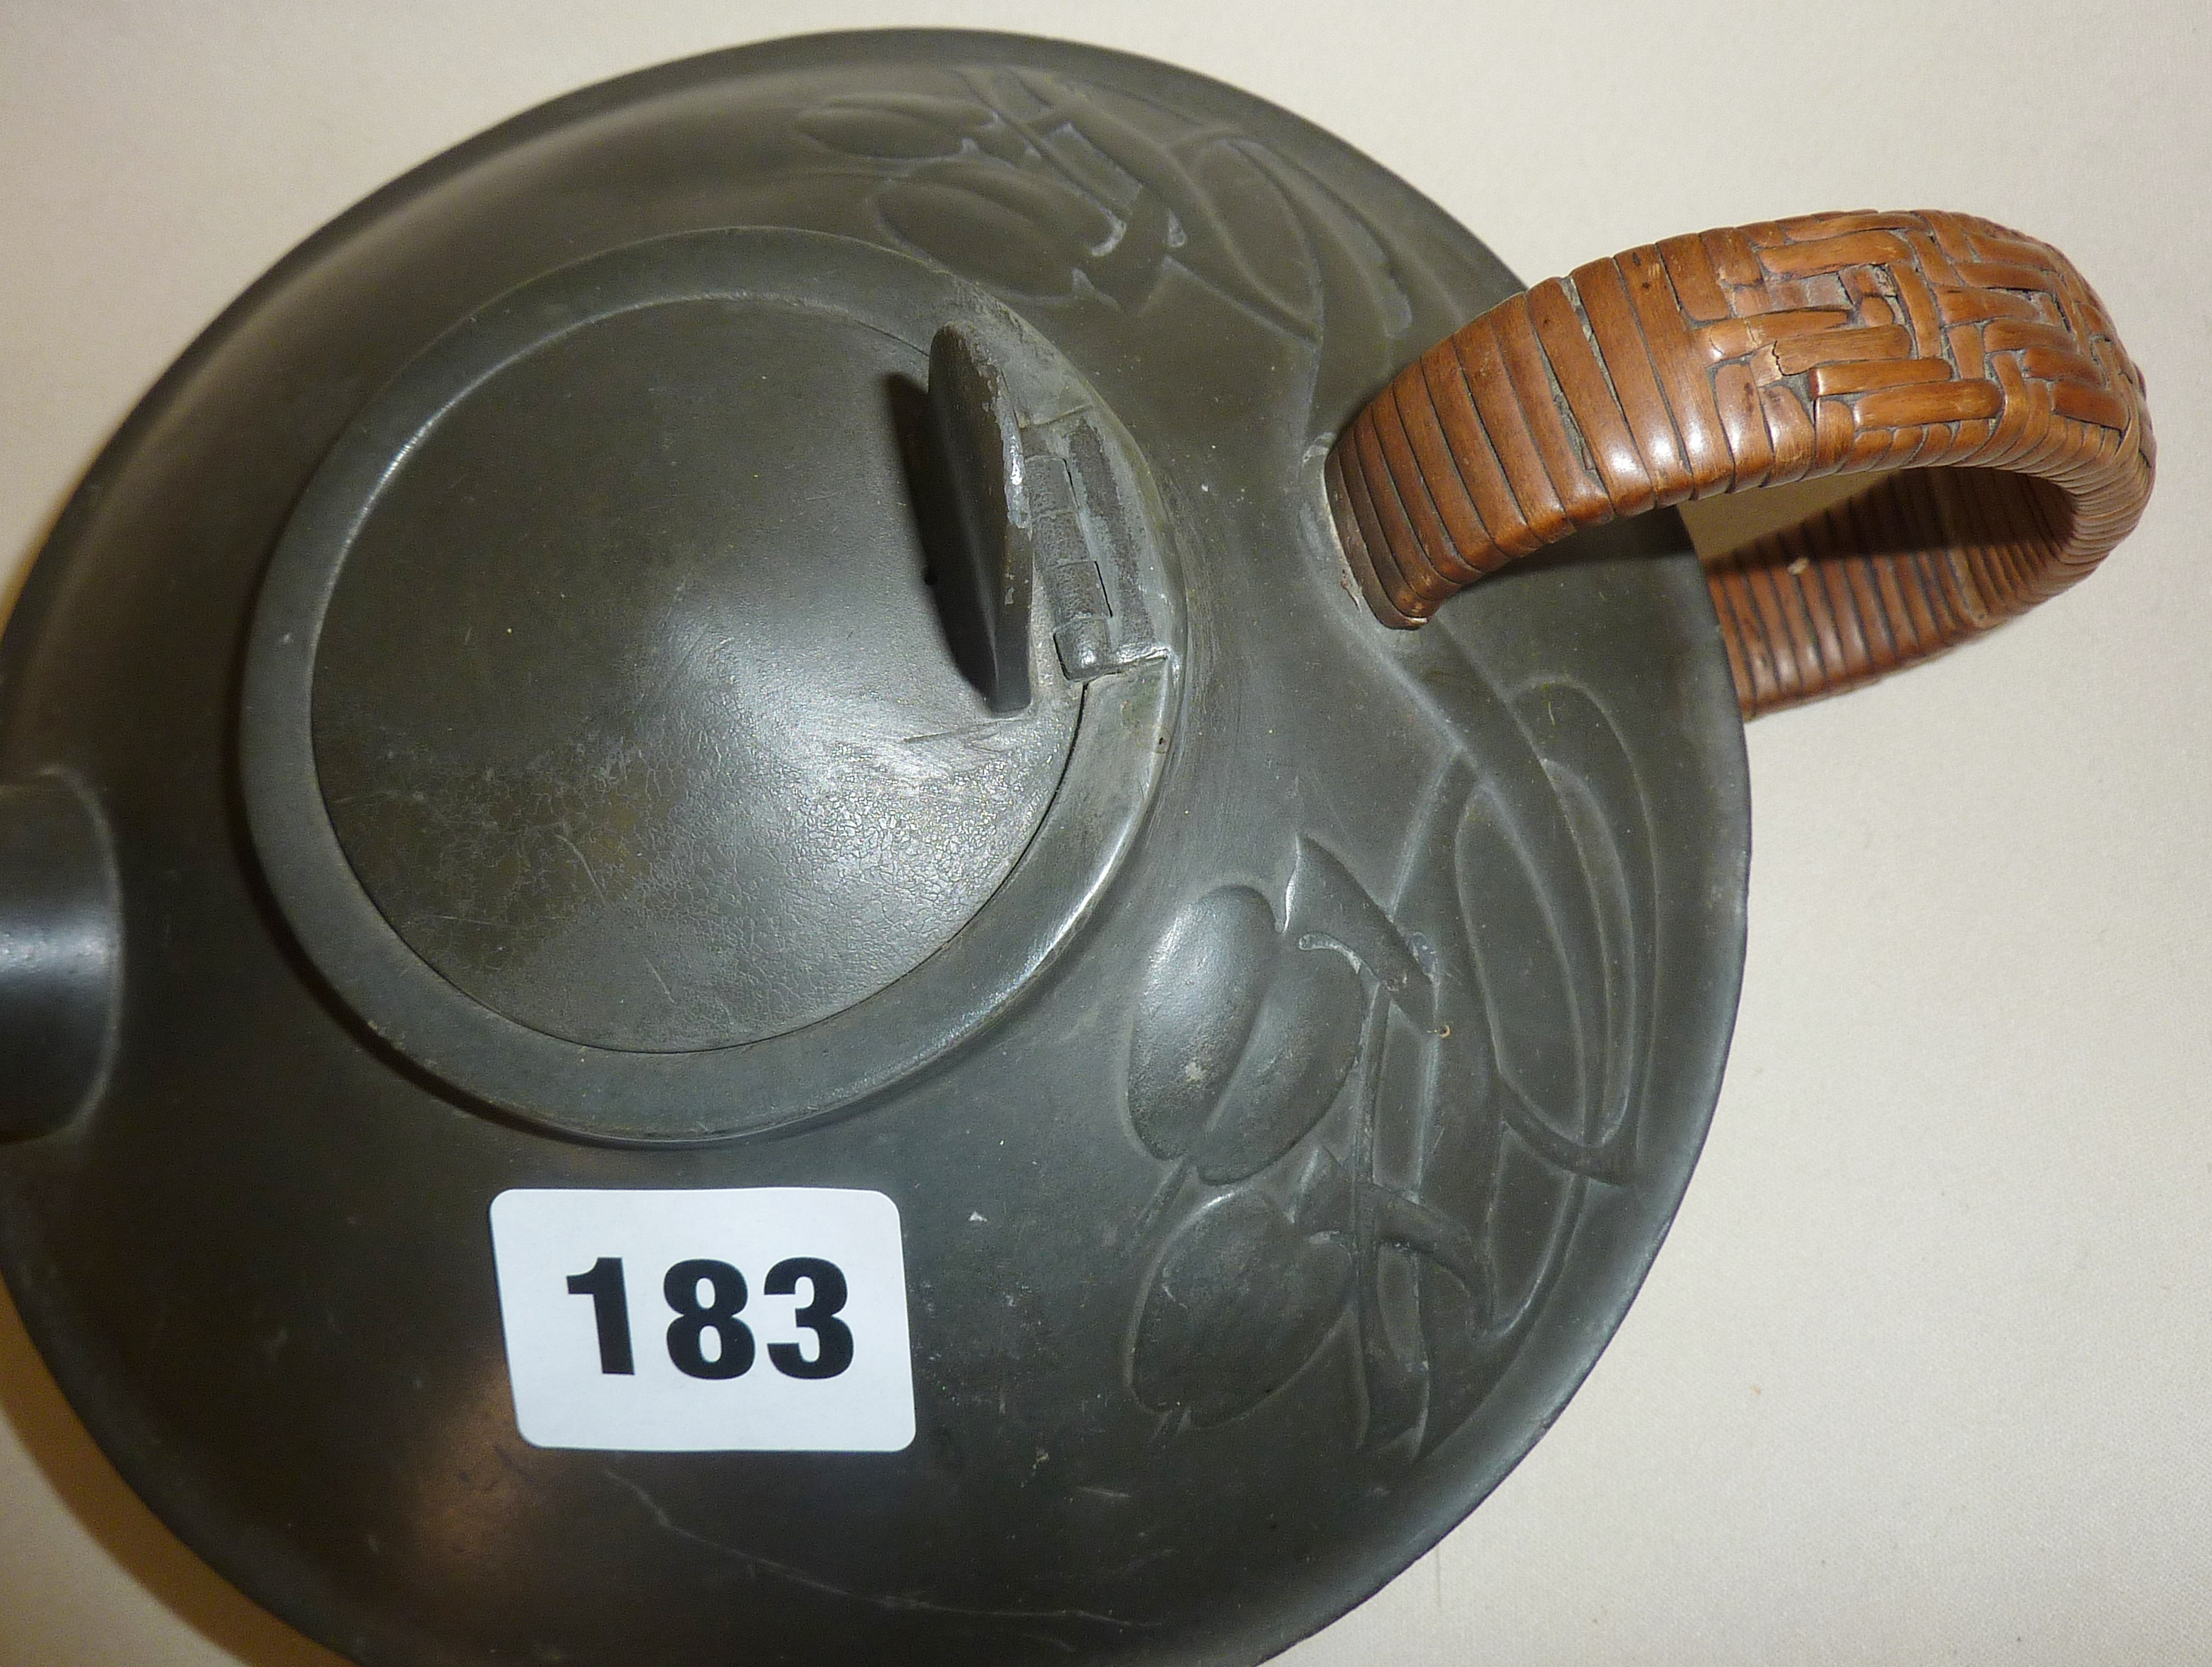 Archibald Knox designed Arts and Crafts Tudric Pewter teapot 0231, retailed by Liberty & Co - Image 2 of 3